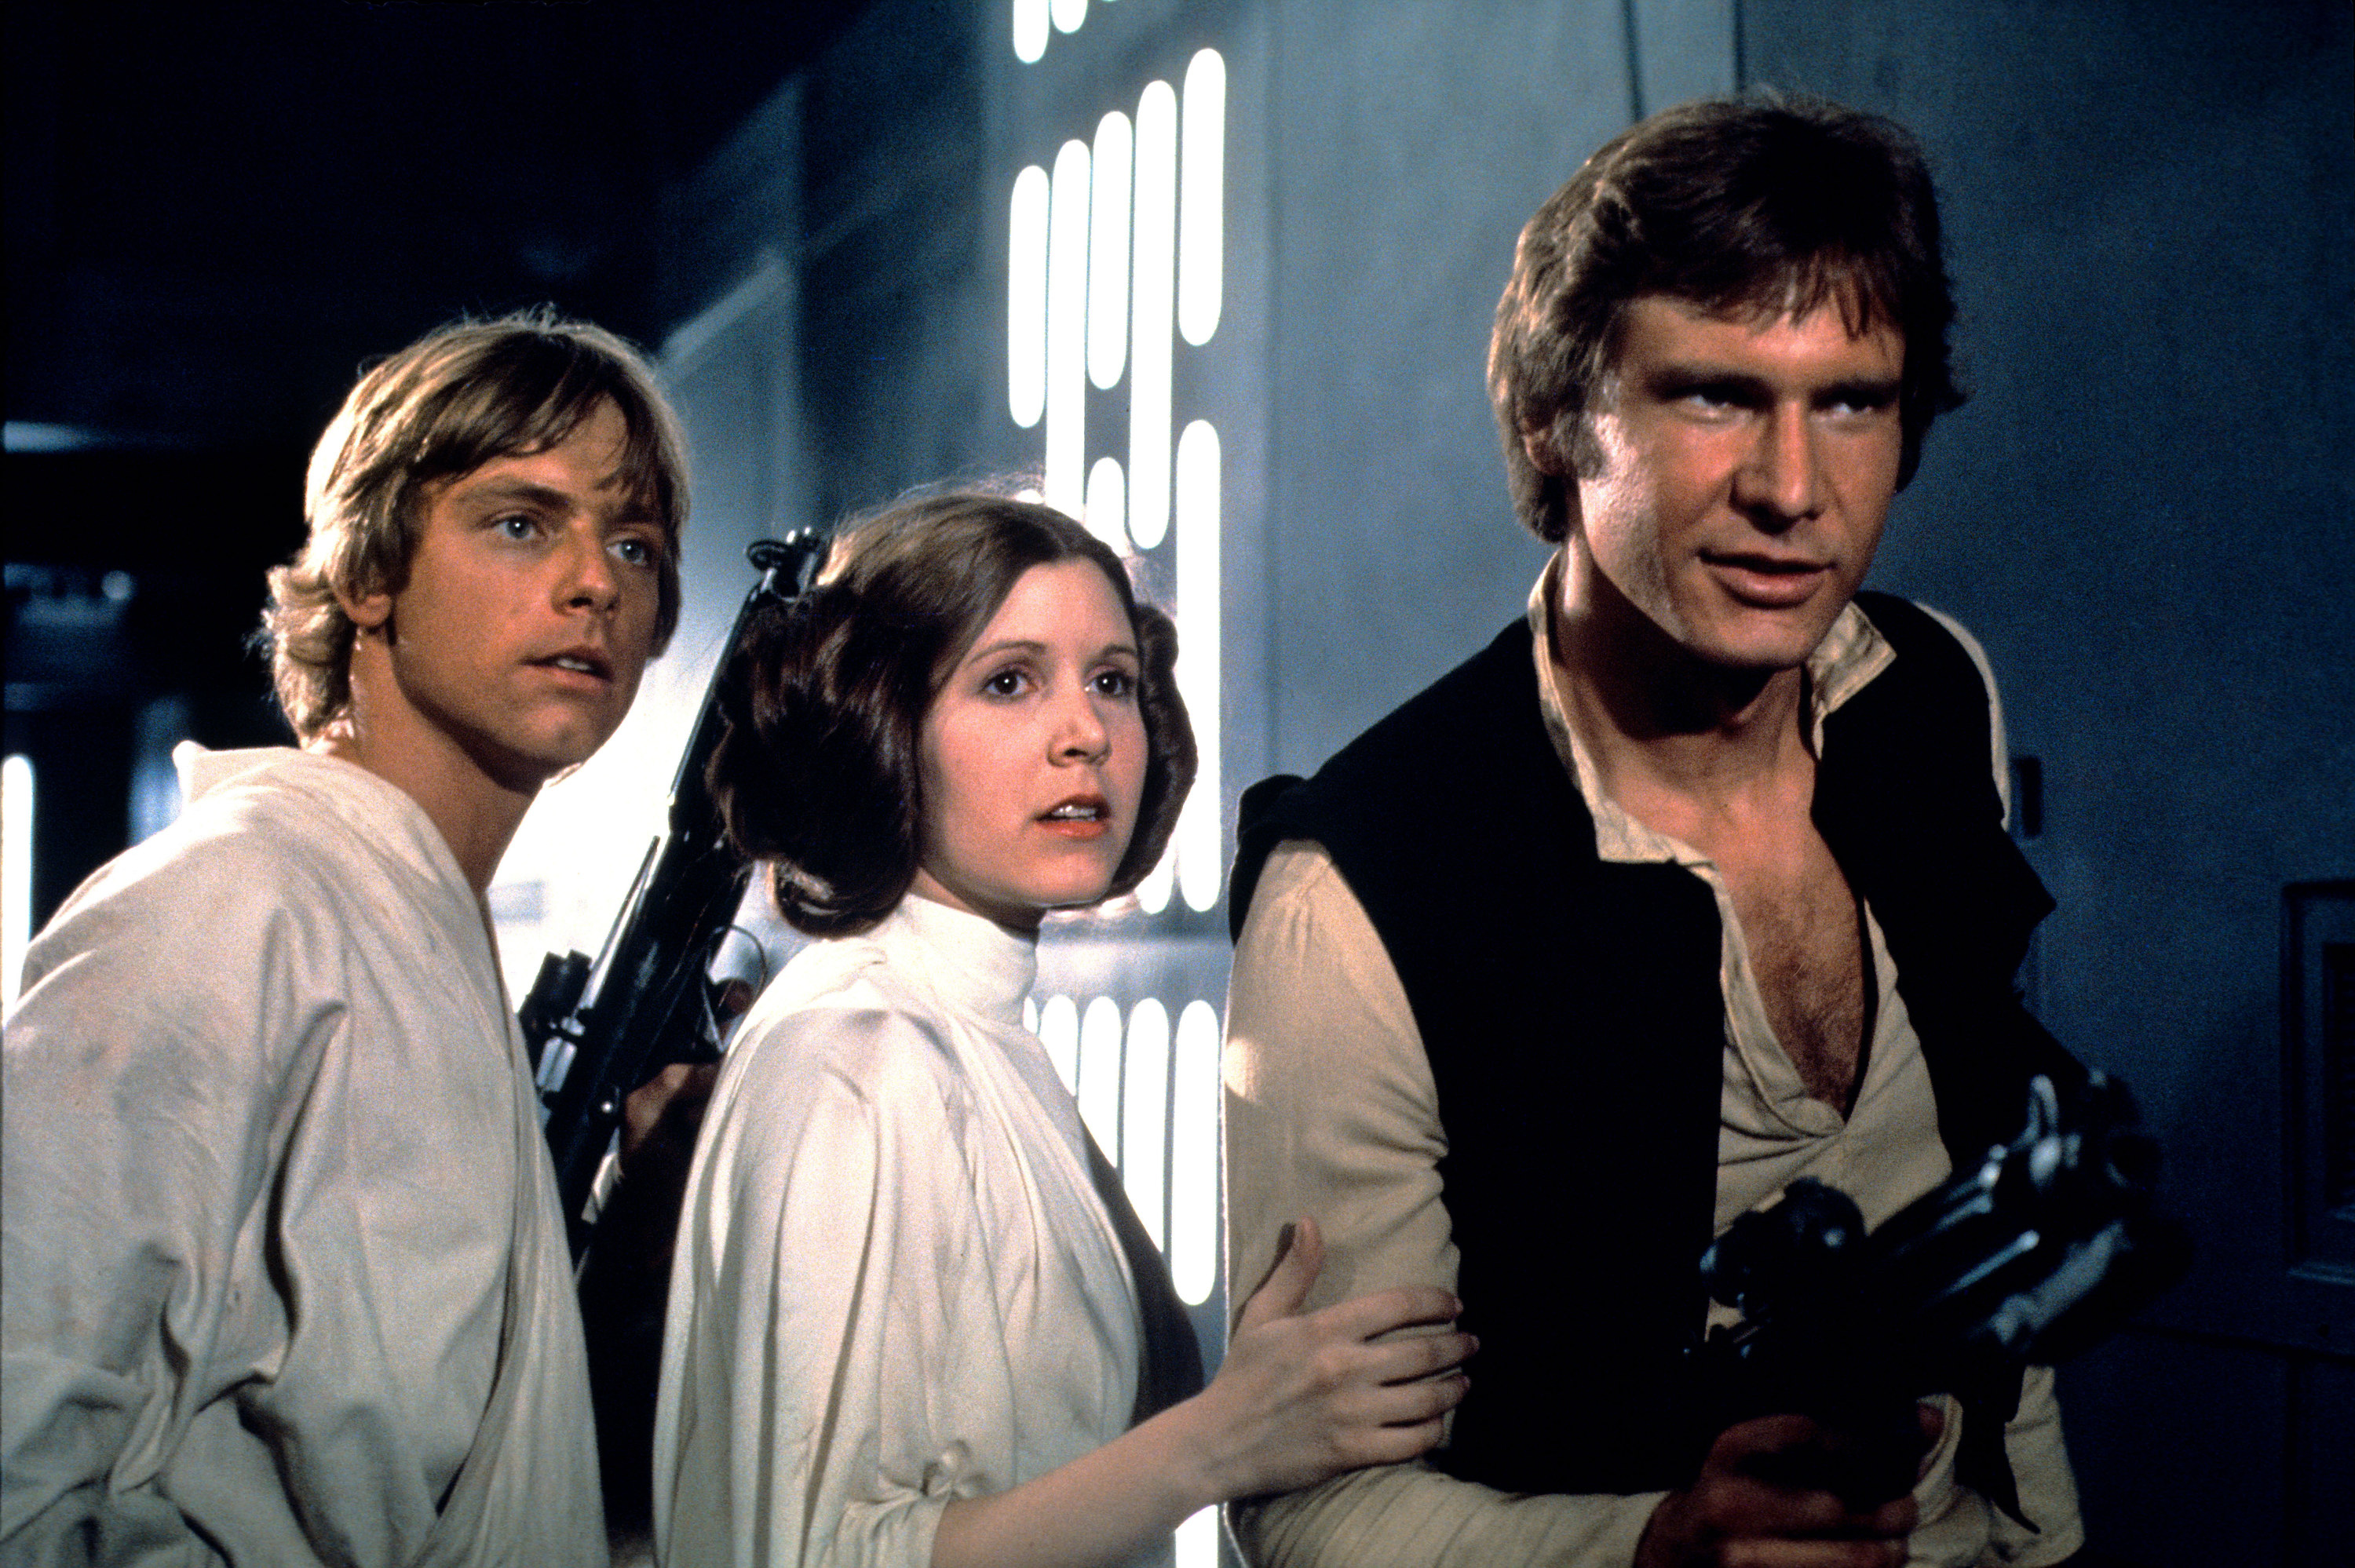 Luke, Leia, and Han with guns in the film